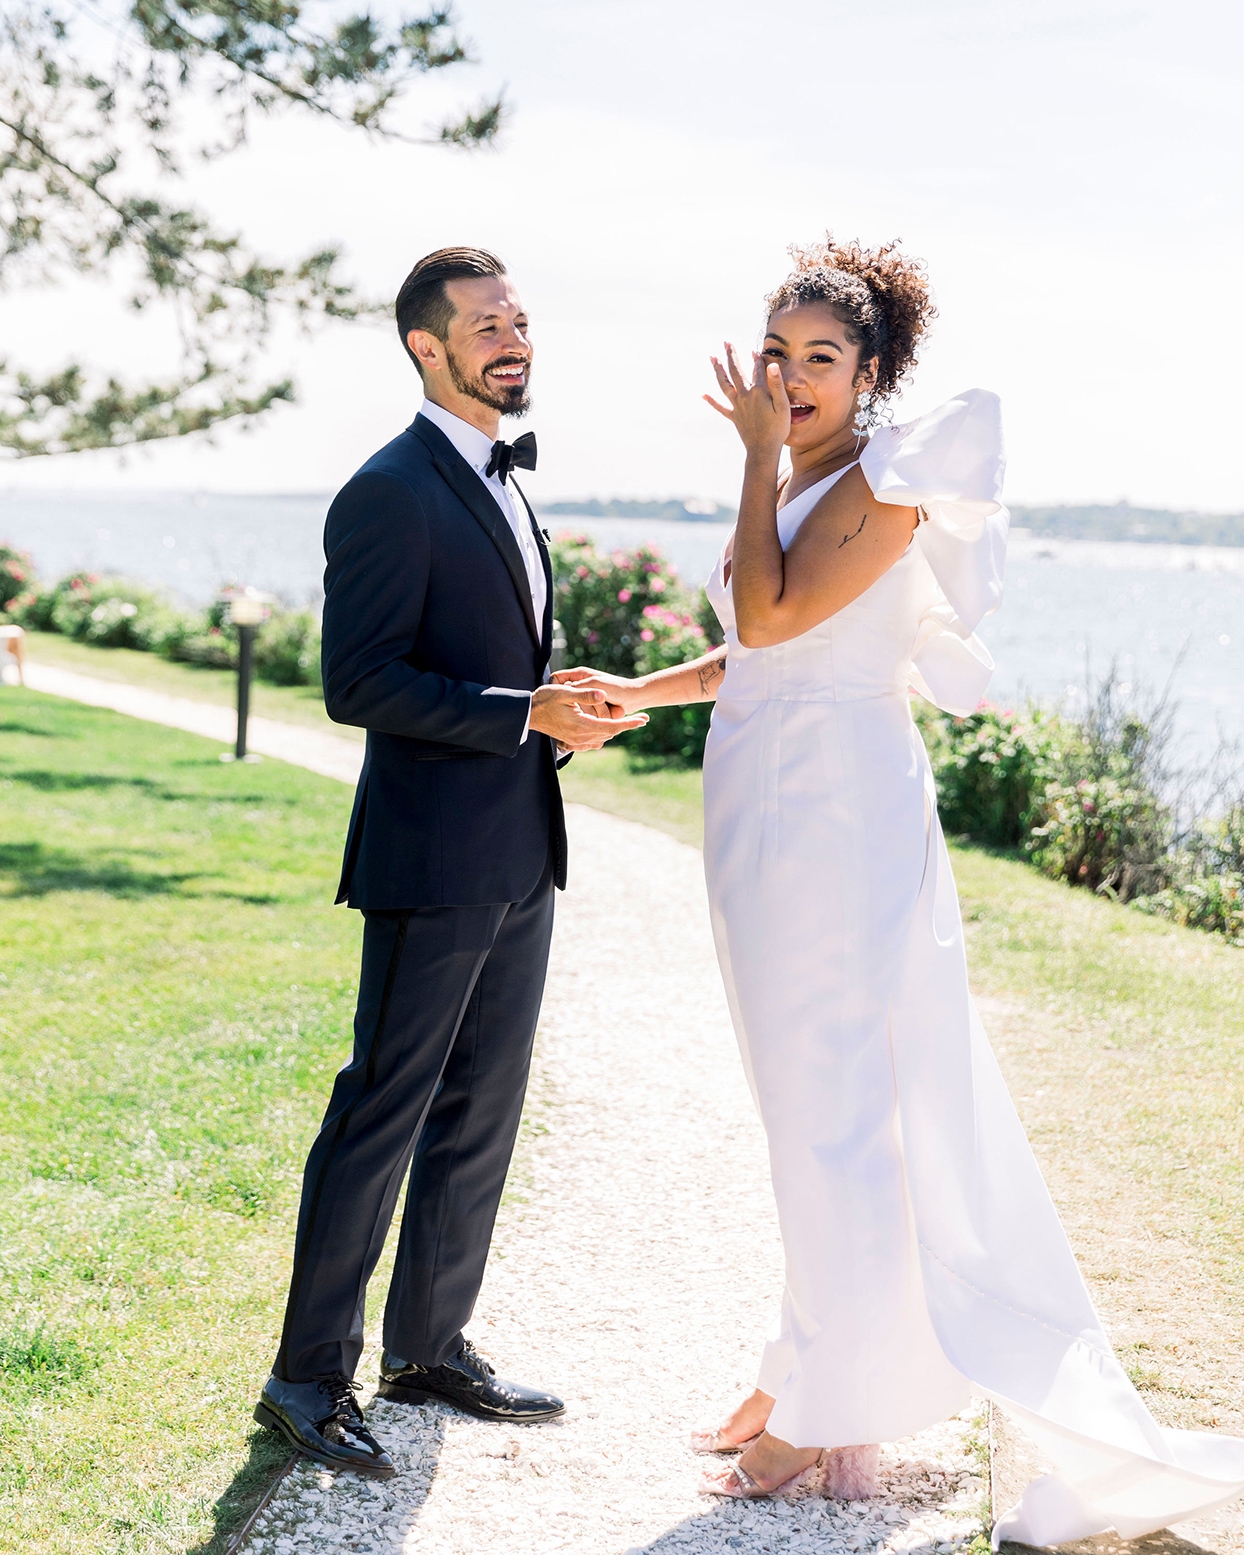 dalila elliot wedding couple first look